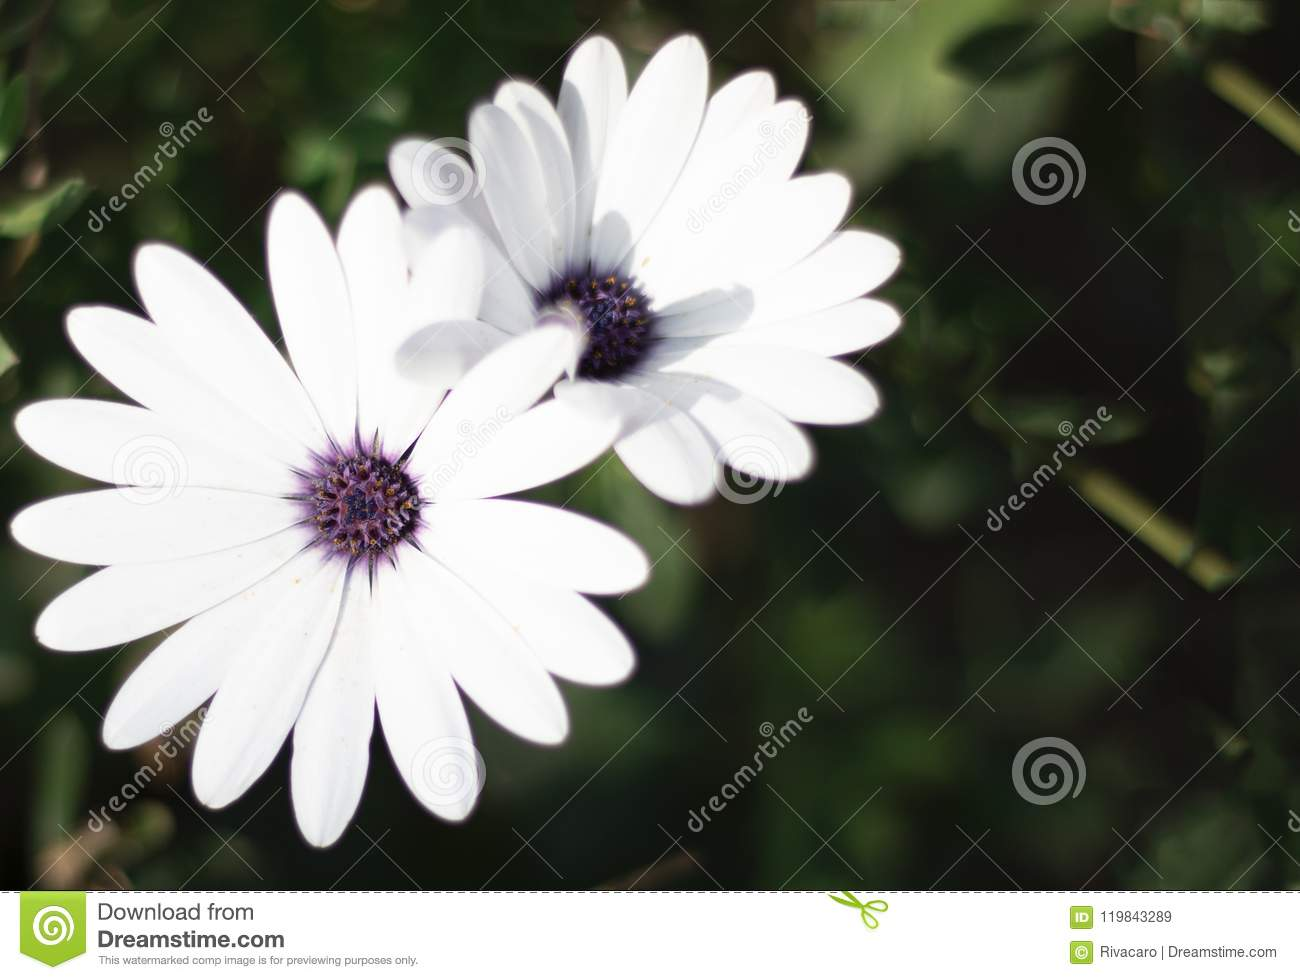 White Petals And Purple Center Flower Stock Image Image Of Nature